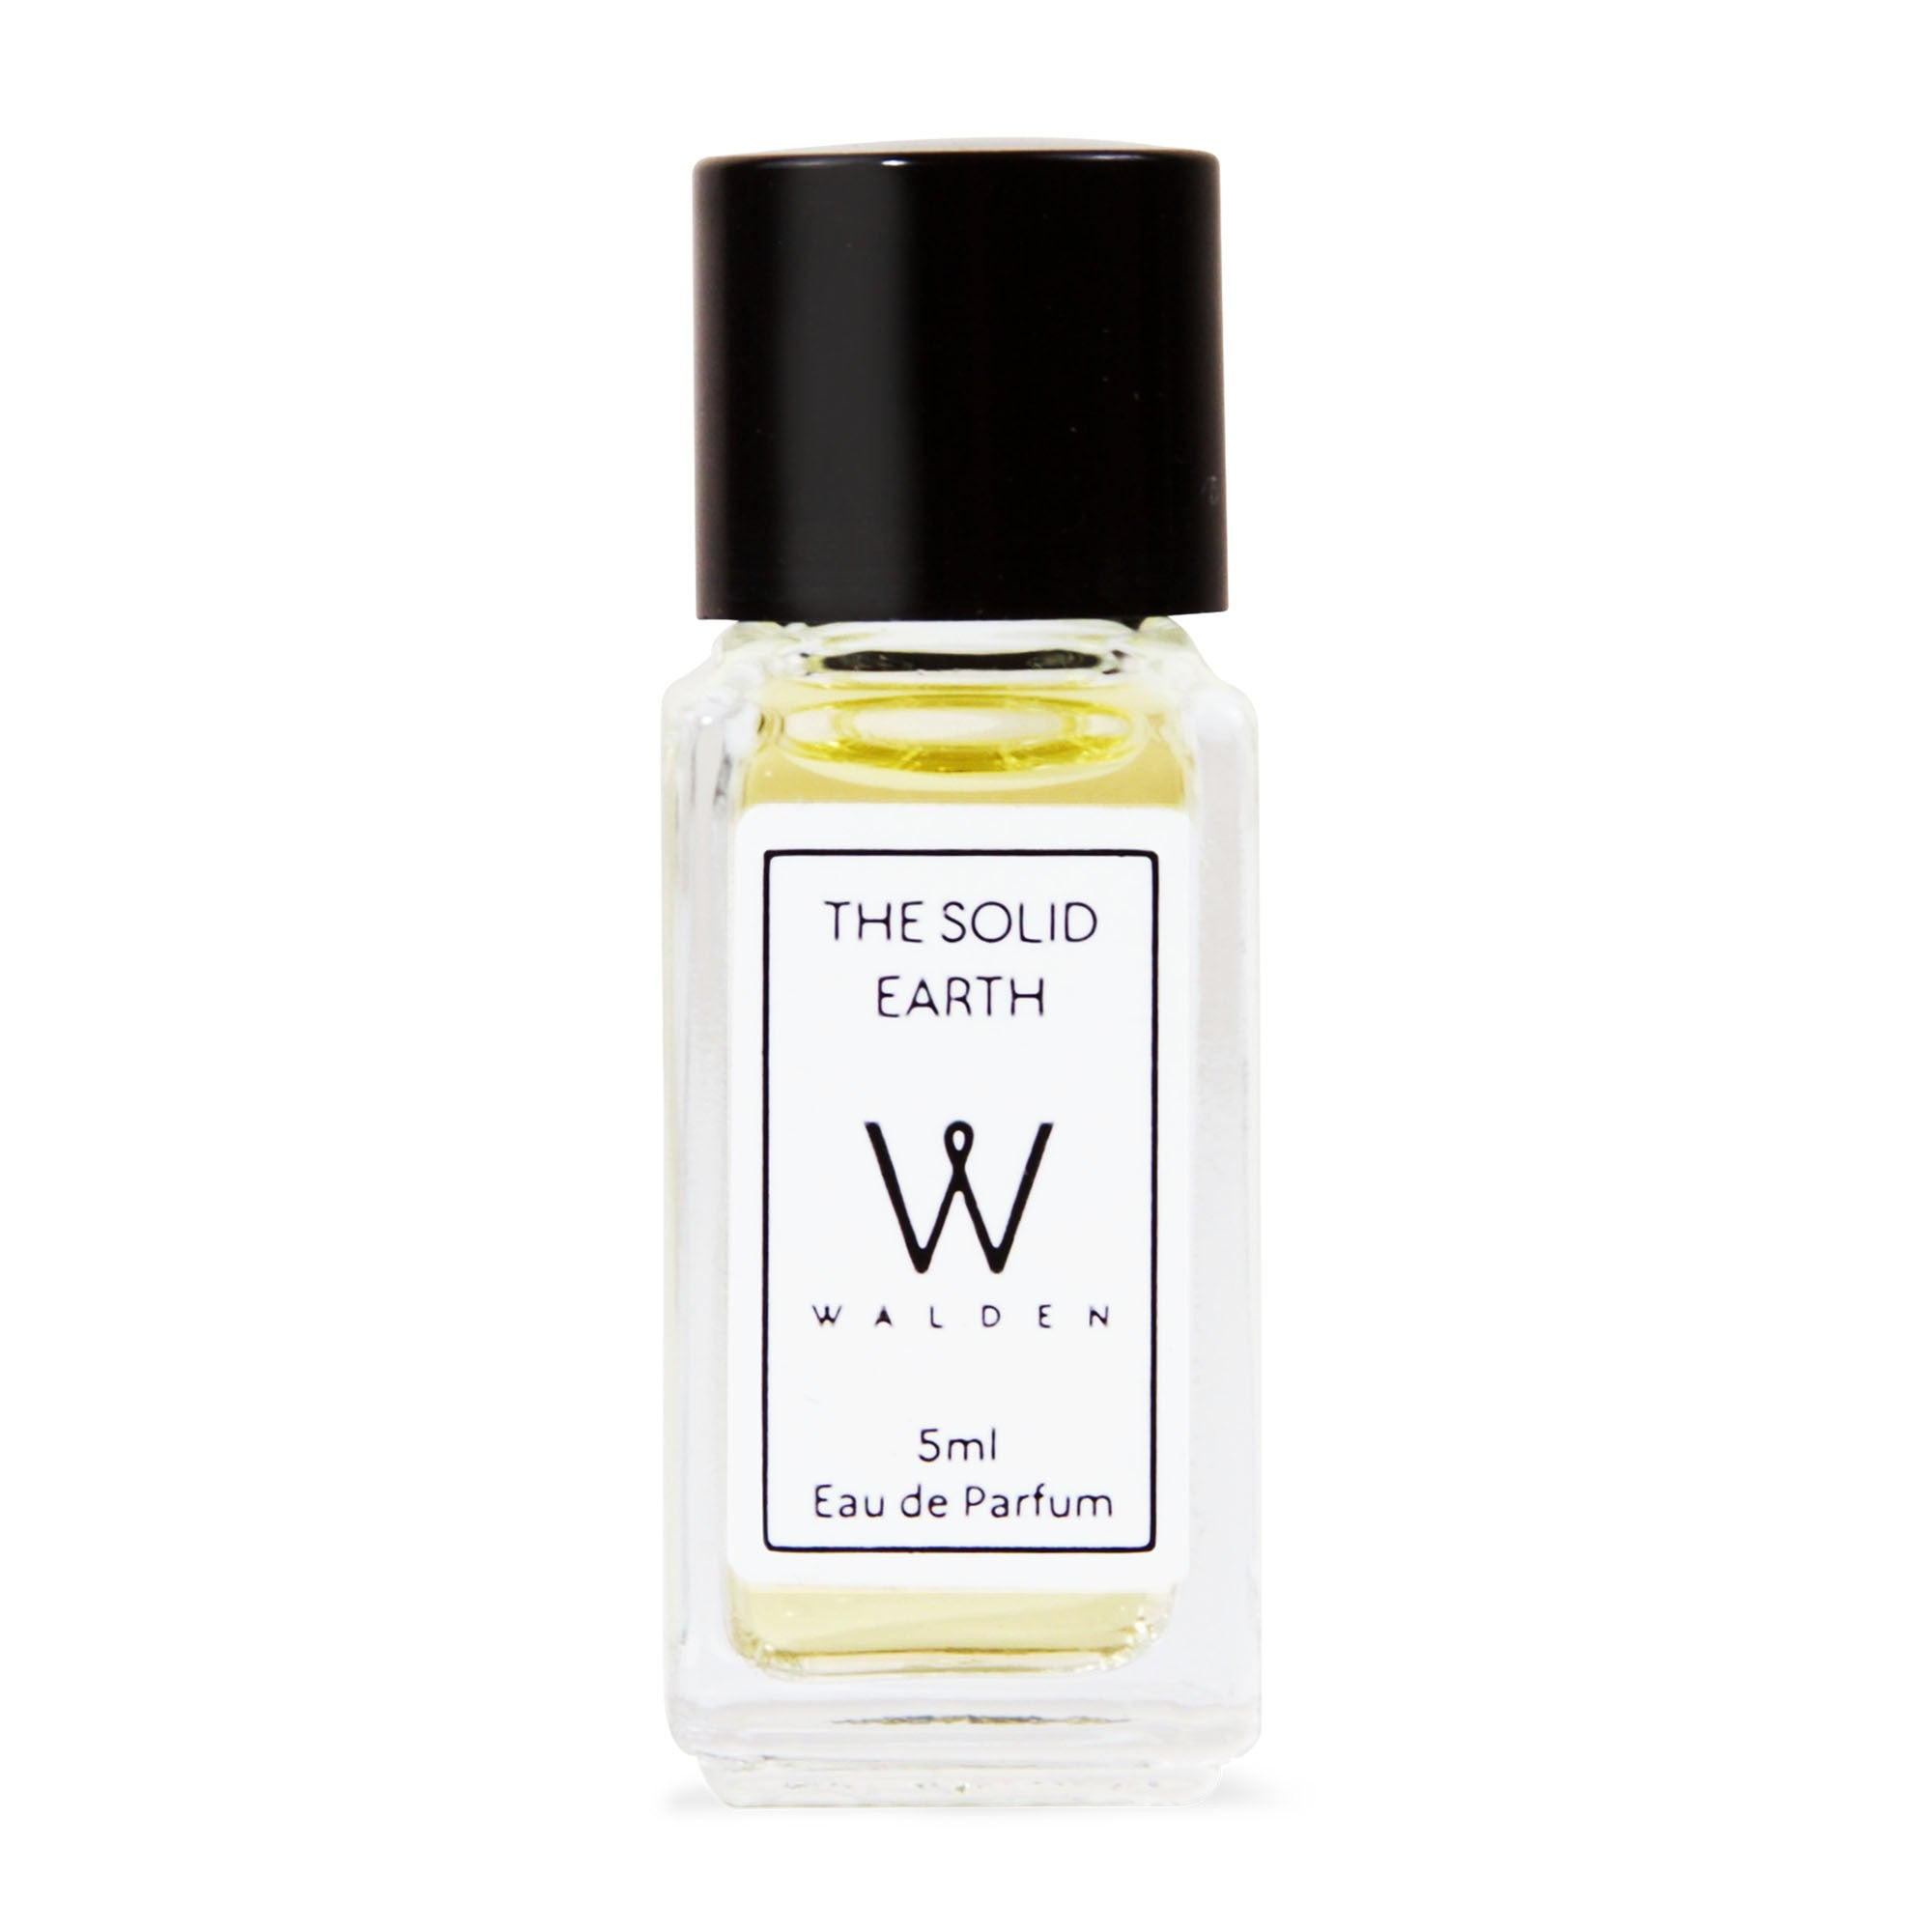 'The Solid Earth' Natural Perfume Sample 5ml